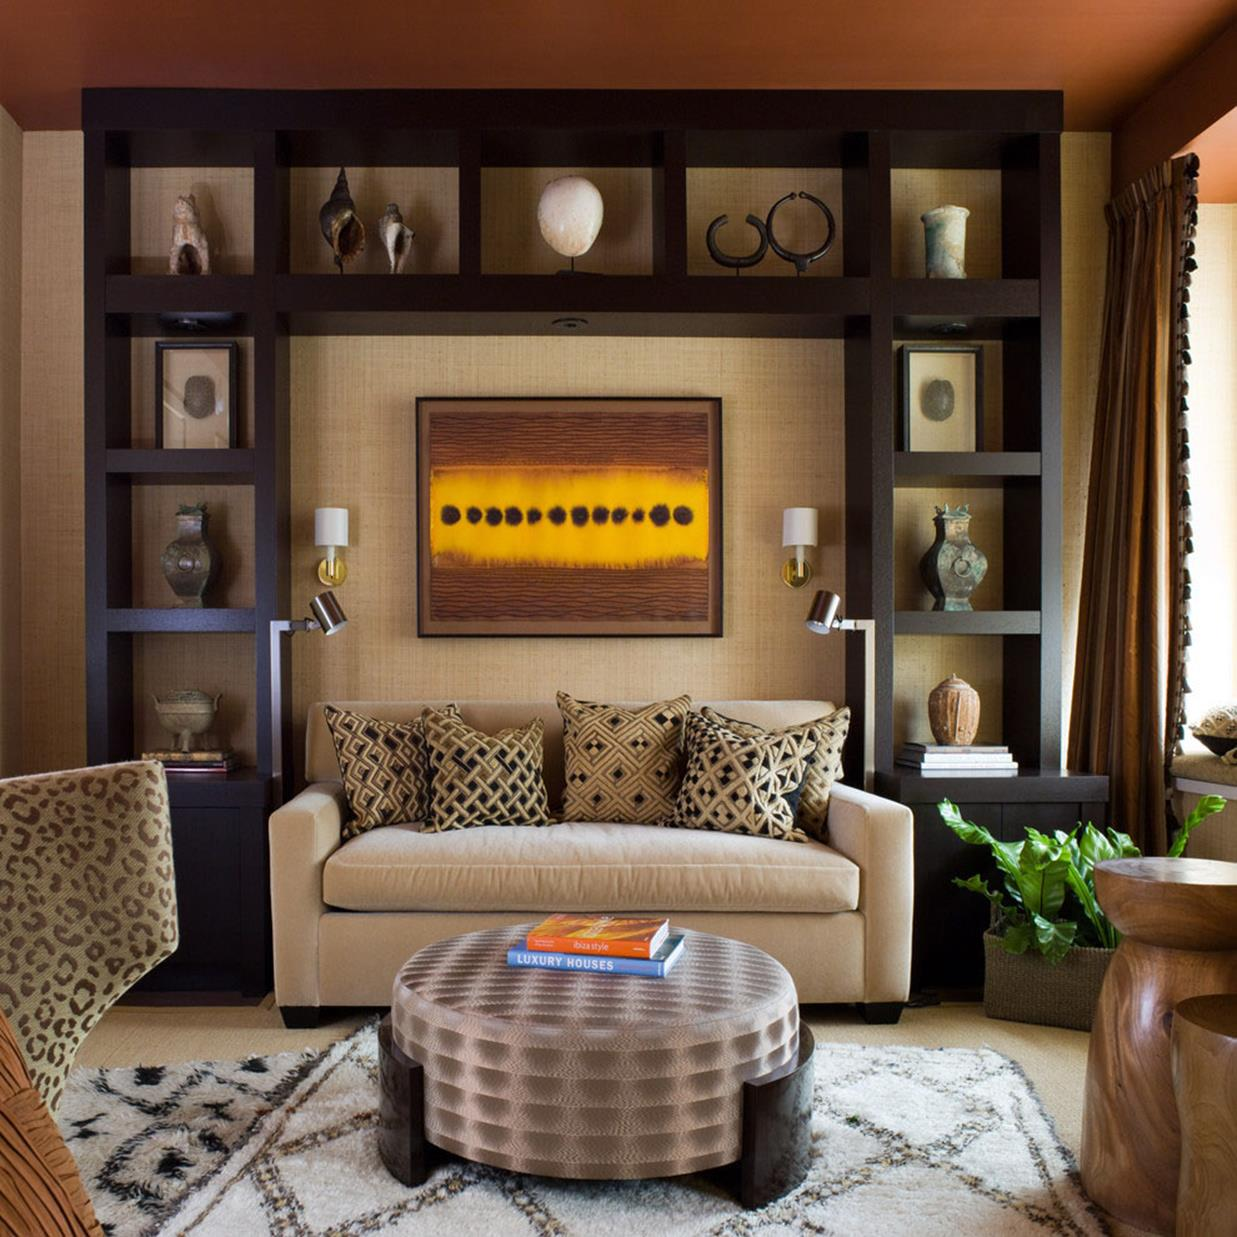 Living Room Ideas For Small Houses 21